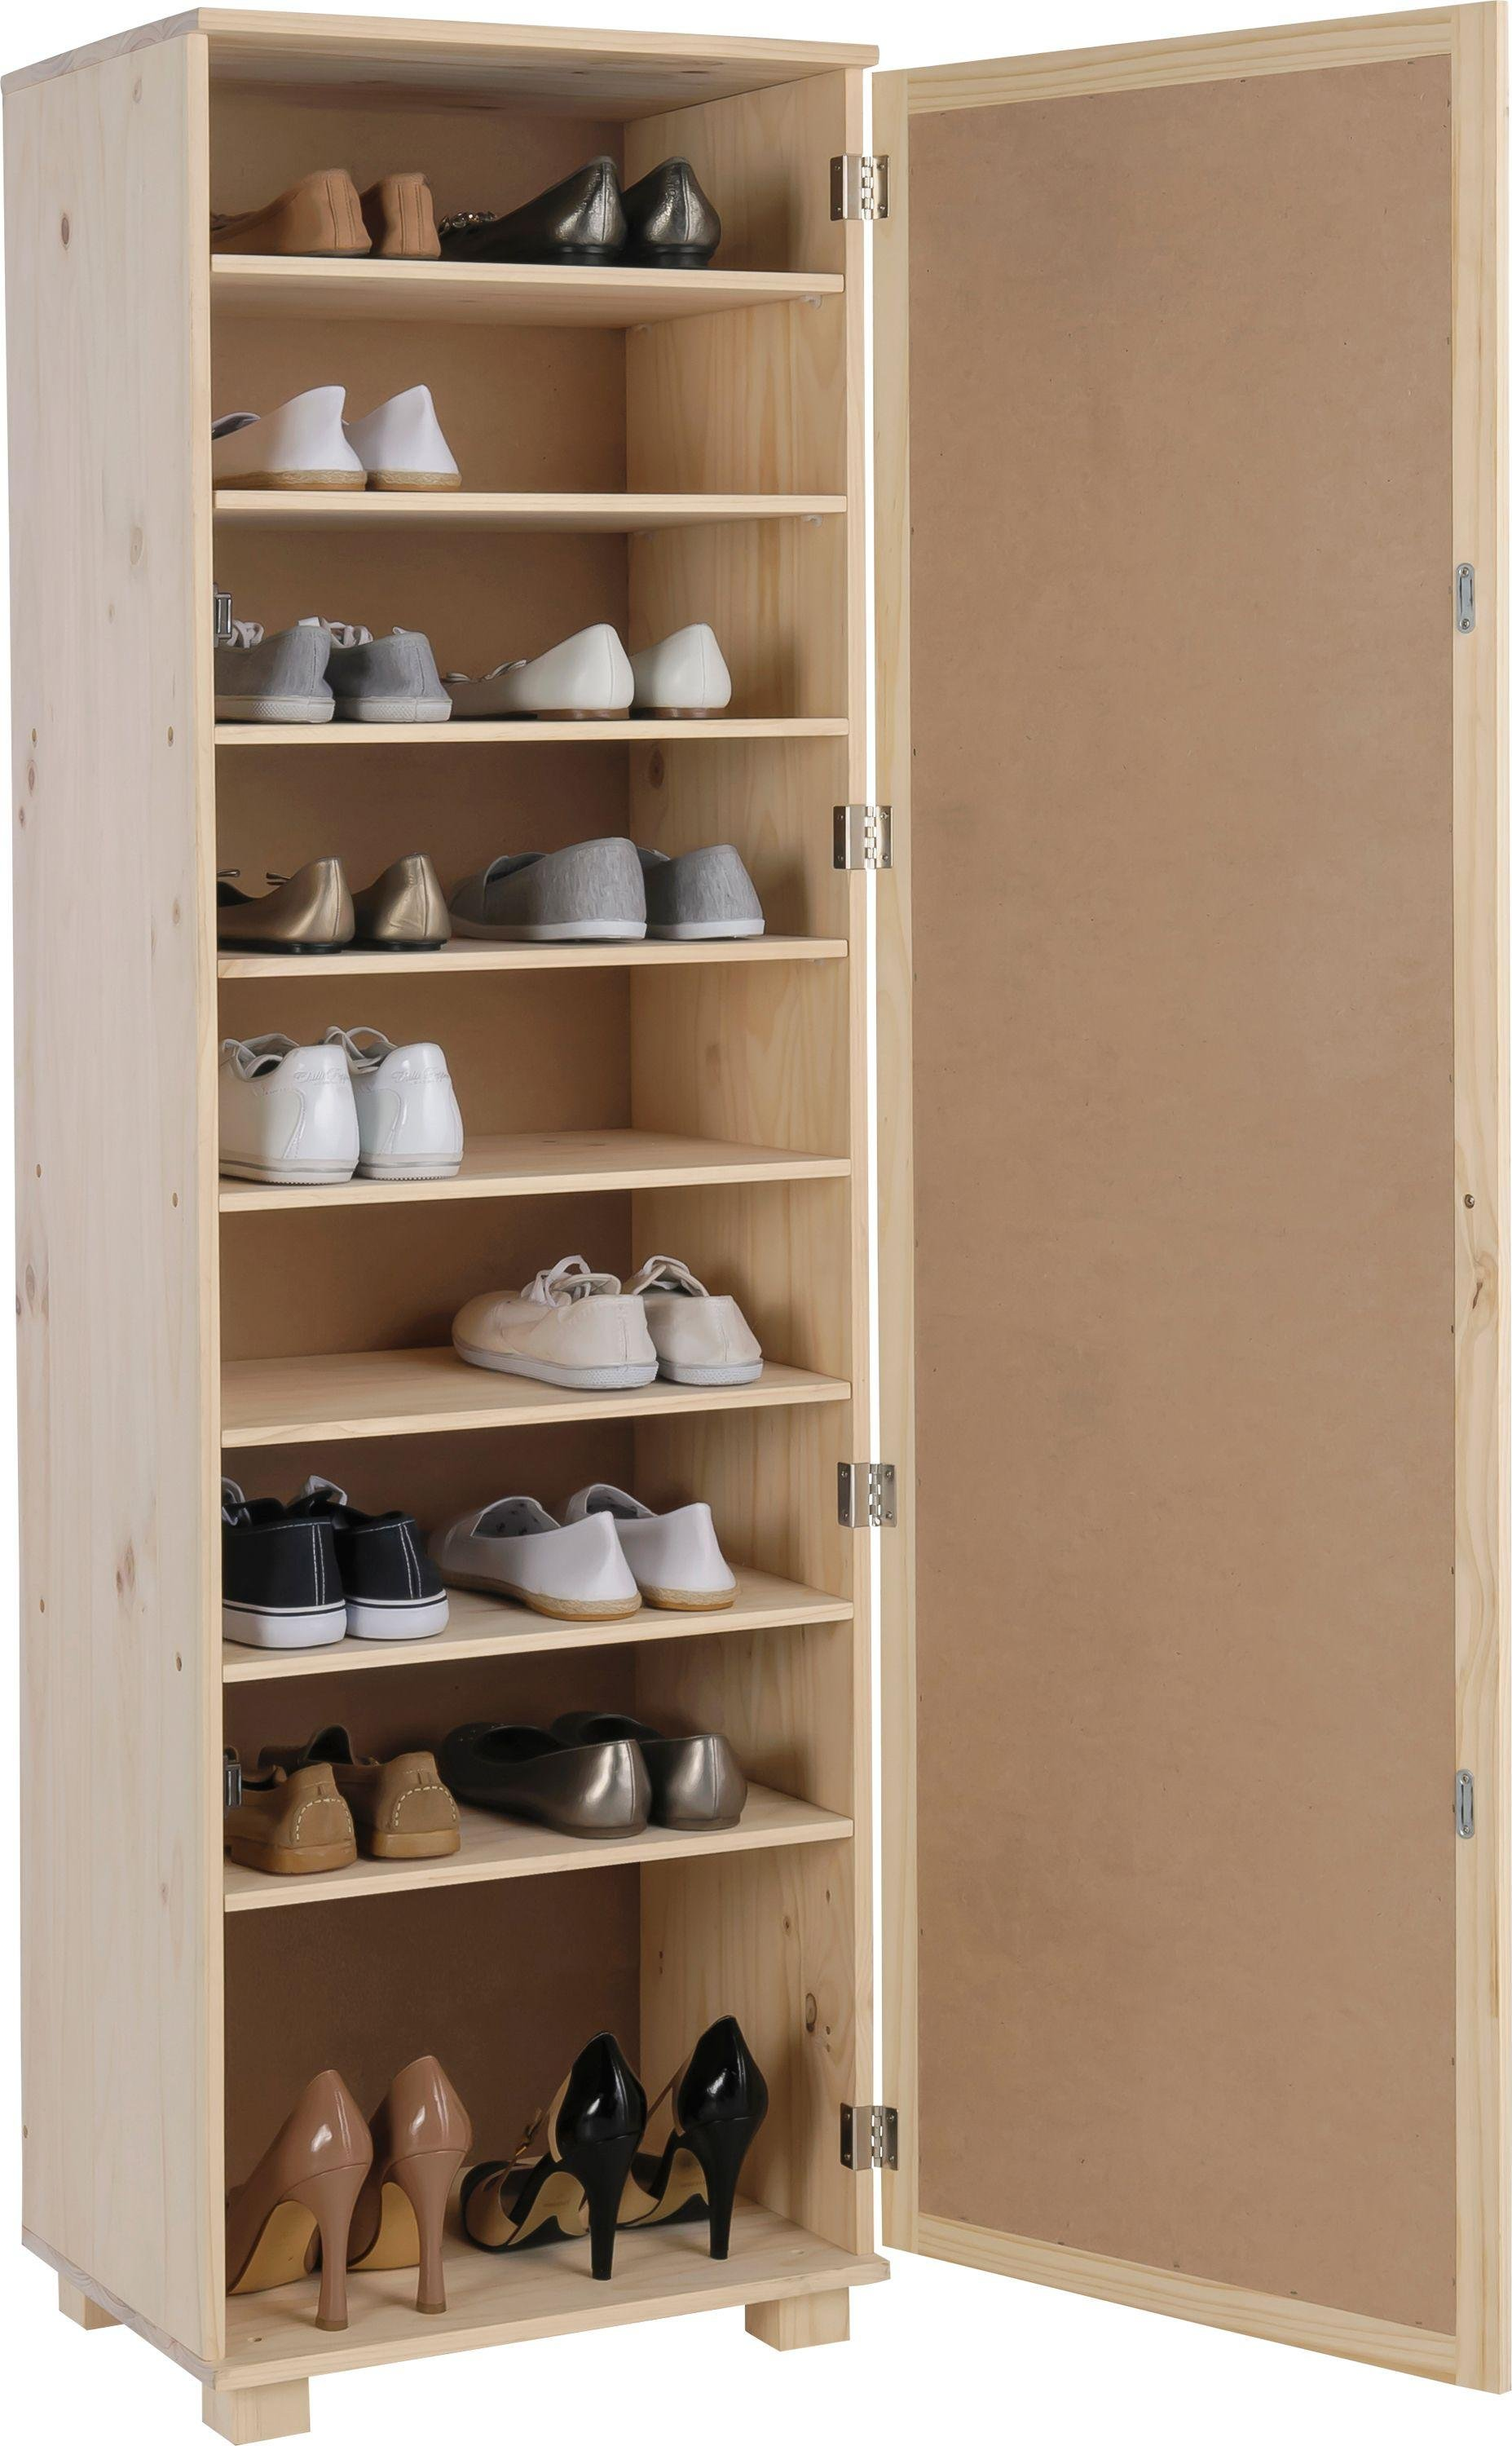 Buy HOME Mirrored Shoe Storage Cabinet